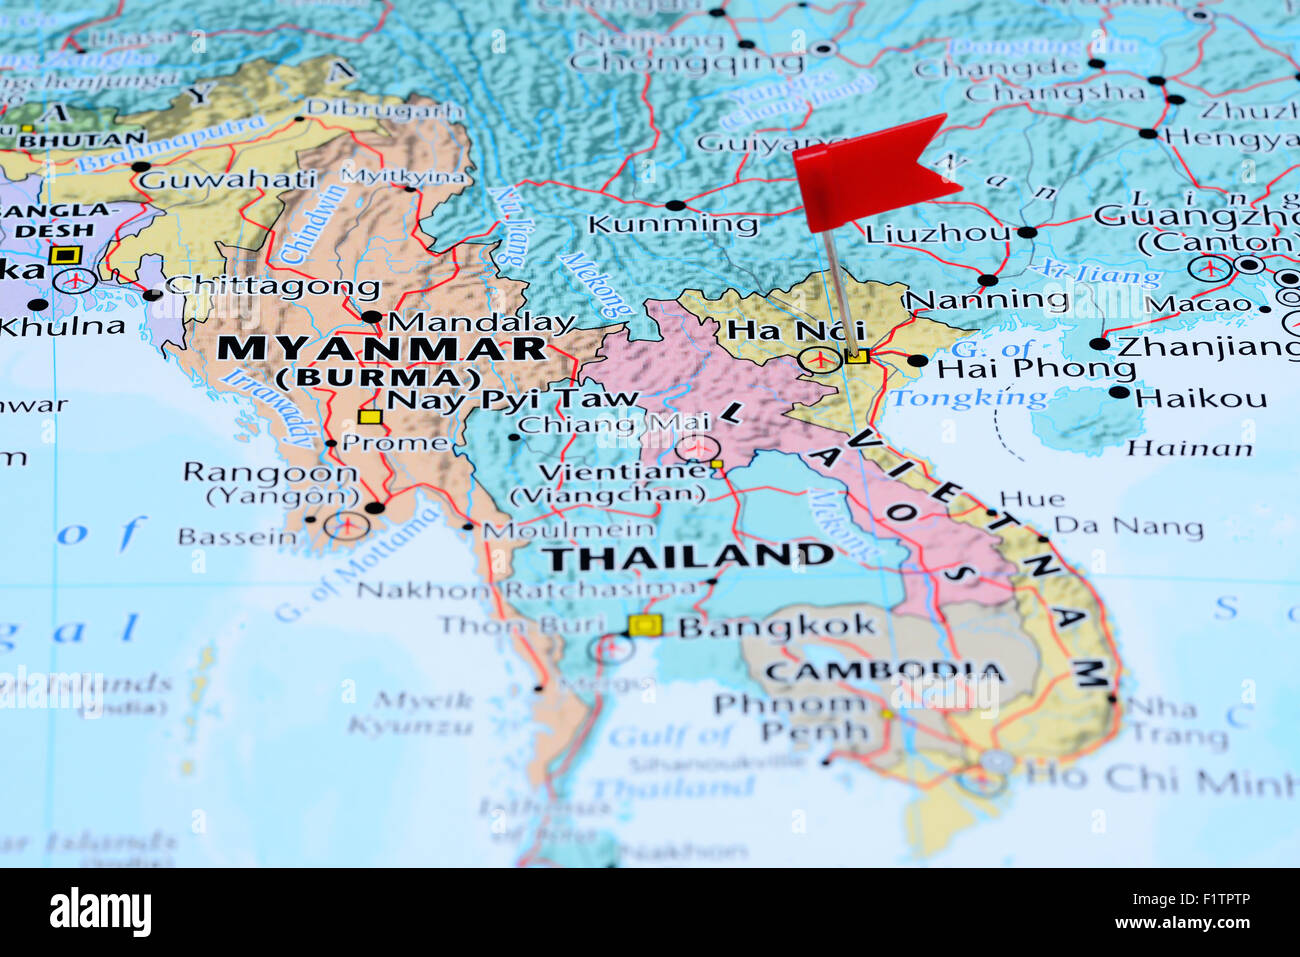 Hanoi pinned on a map of Asia Stock Photo: 87211286 - Alamy